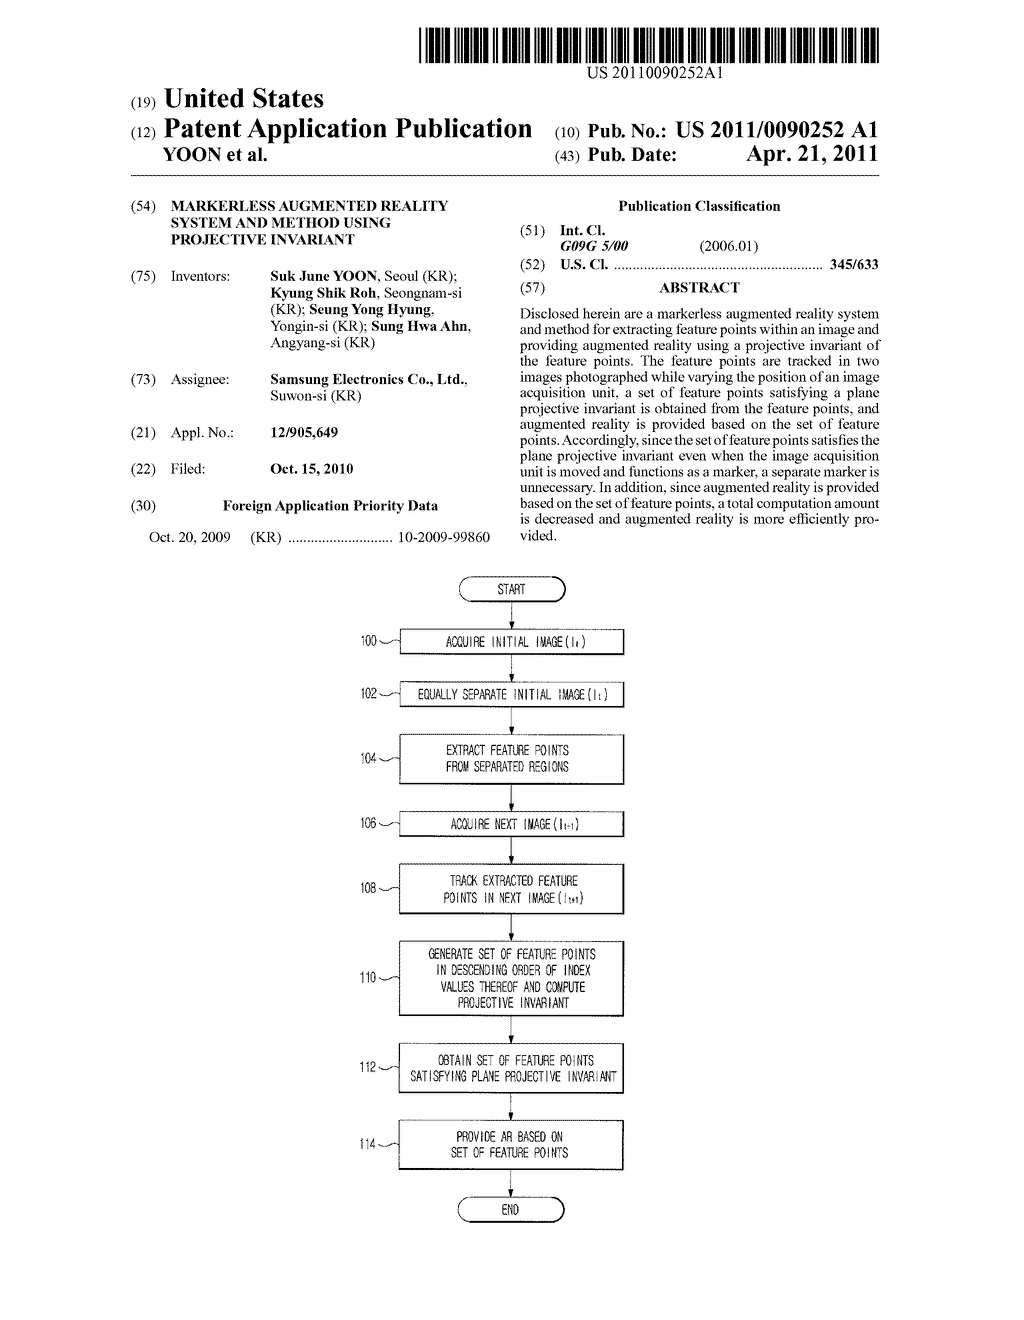 MARKERLESS AUGMENTED REALITY SYSTEM AND METHOD USING PROJECTIVE INVARIANT - diagram, schematic, and image 01